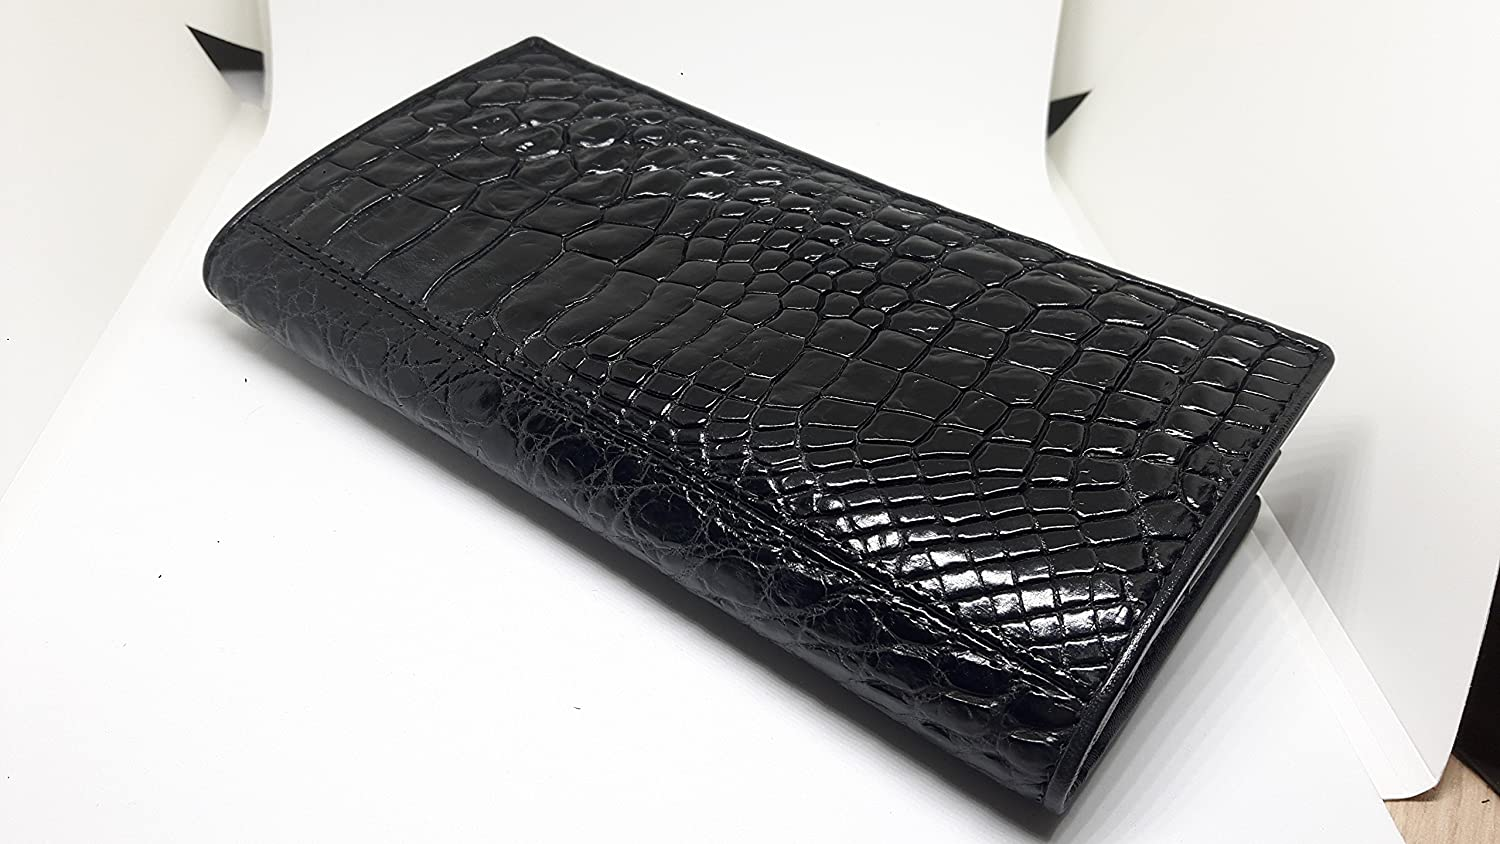 Crocodile paw Leather Memon BEAUTIFUL WOMEN GENUINE CROCODILE LETHER CLUTCH BIFOLD WALLET SIZE = 3.7 INCHES X 7.5 INCHES BLACK